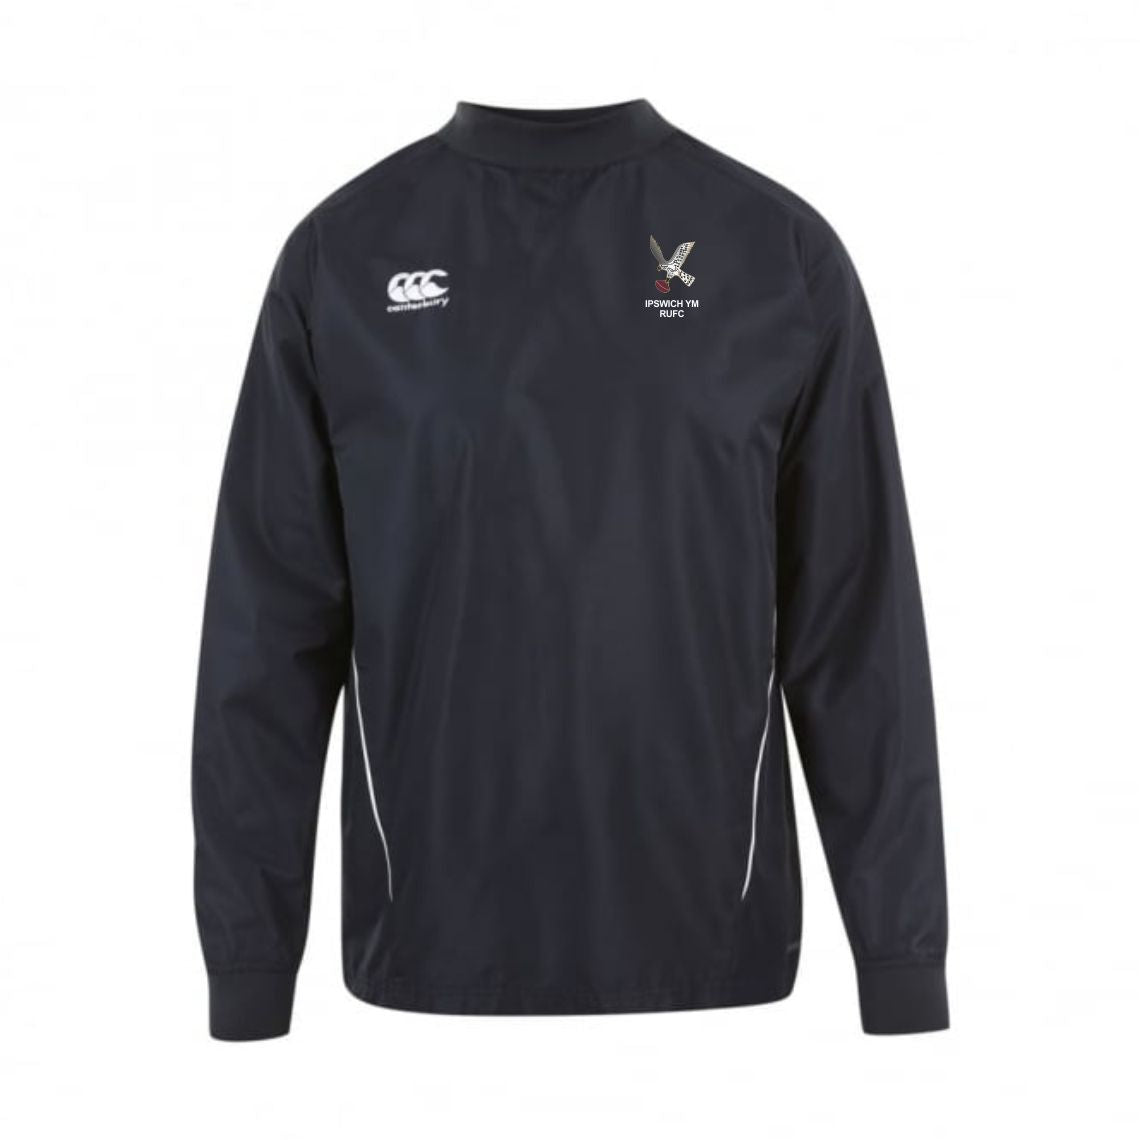 IPSWICH YM RUFC CCC Team Contact top